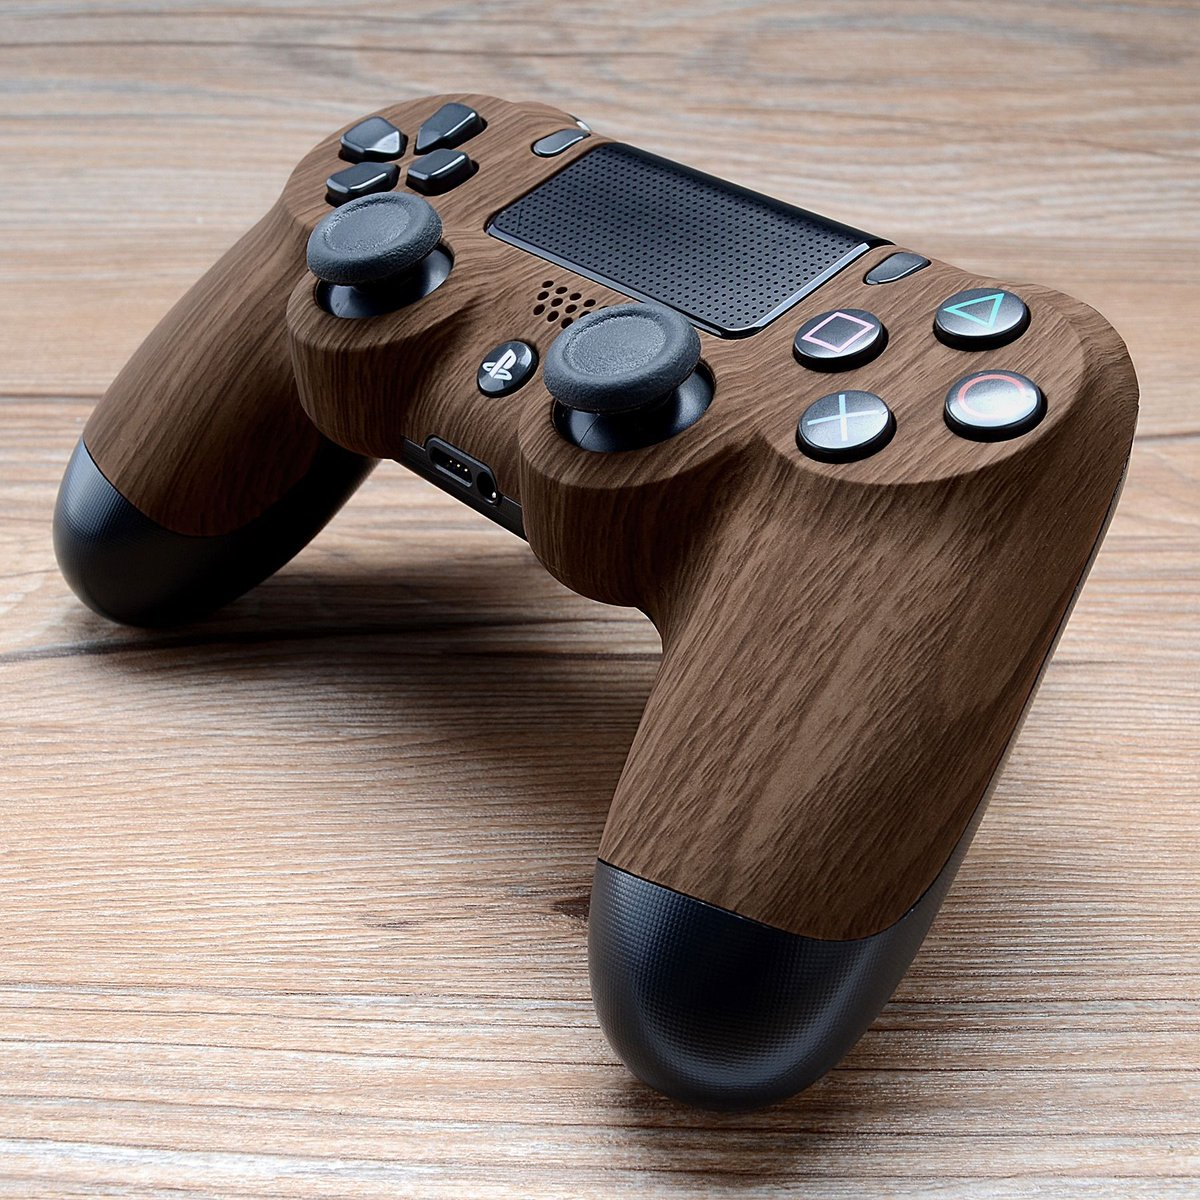 Hard-wood kinda night. http://iconiccontrollers.com #GOICONIC #BEICONIC  #ps5 #ps4 #playstation #dualshock4 #ps4controller #ps4modspic.twitter.com/Fa7DKkrFcu